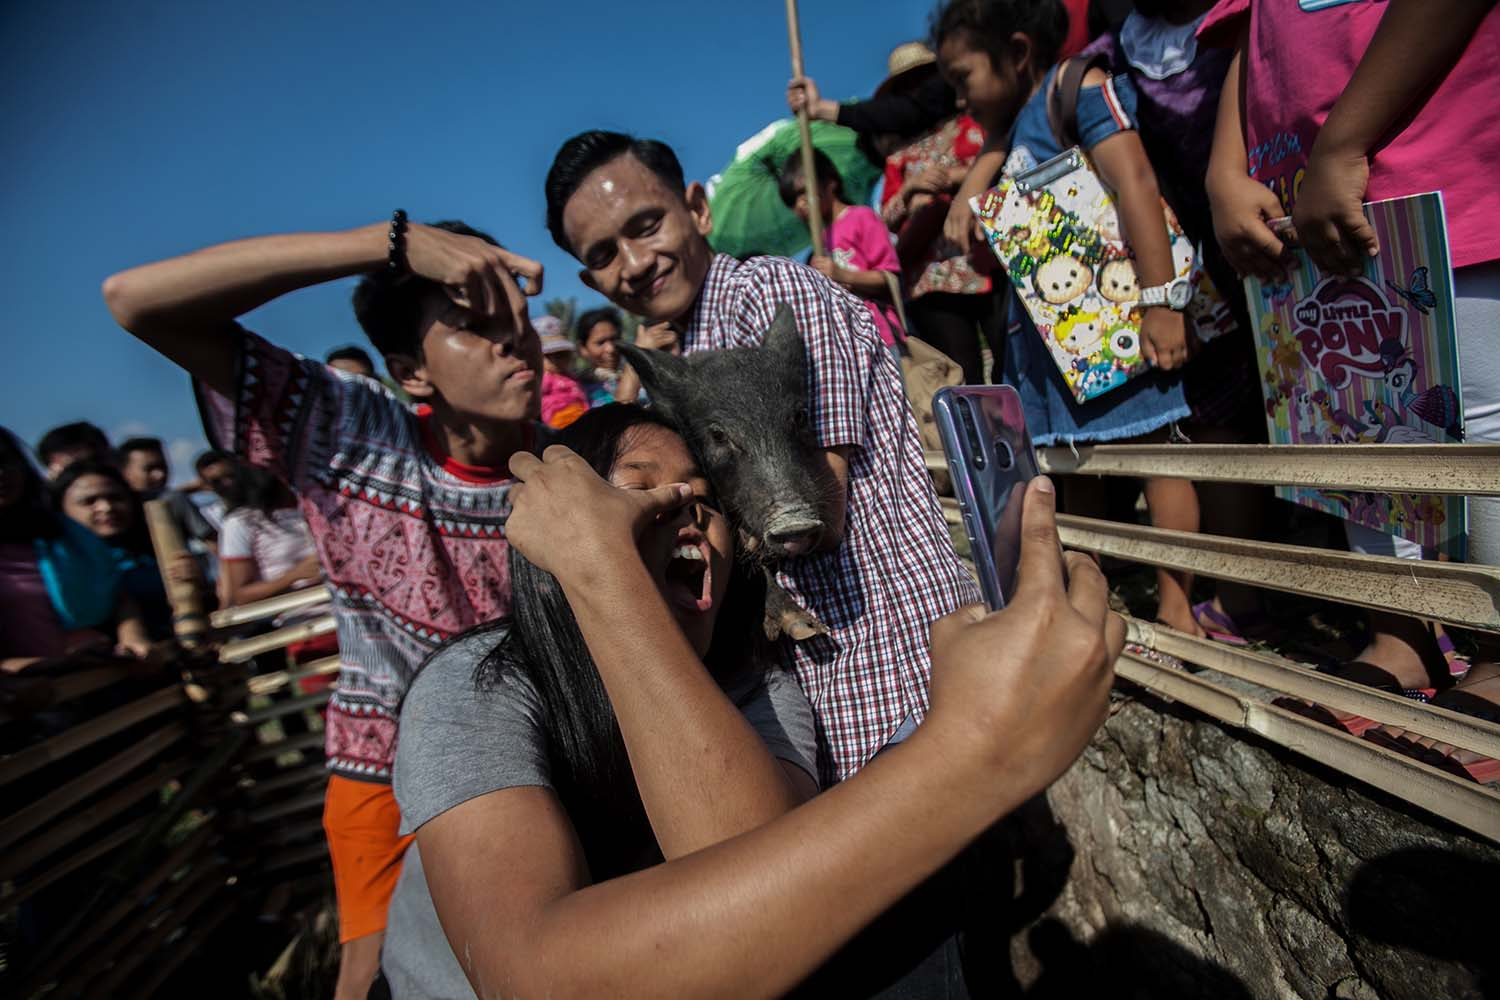 Smile together: Contestants take selfies with pigs during the Lake Toba Pig and Pork Festival 2019. JP/Andri Ginting